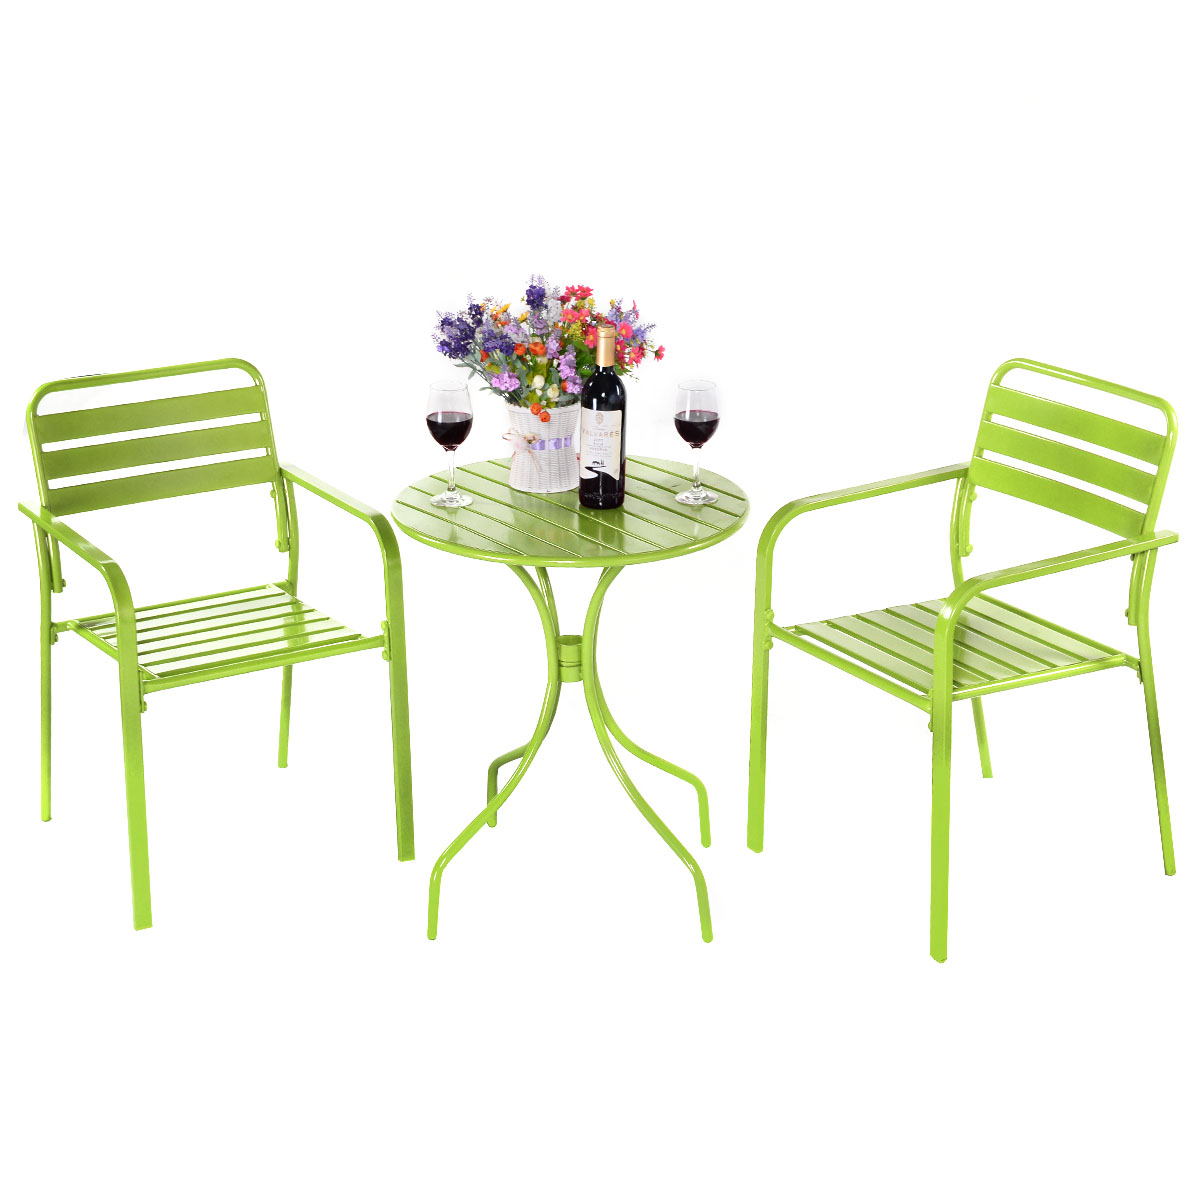 Round Table Patio Furniture Sets Costway 3pc Bistro Round Table Chair Furniture Set Table Patio Steel Bright Green